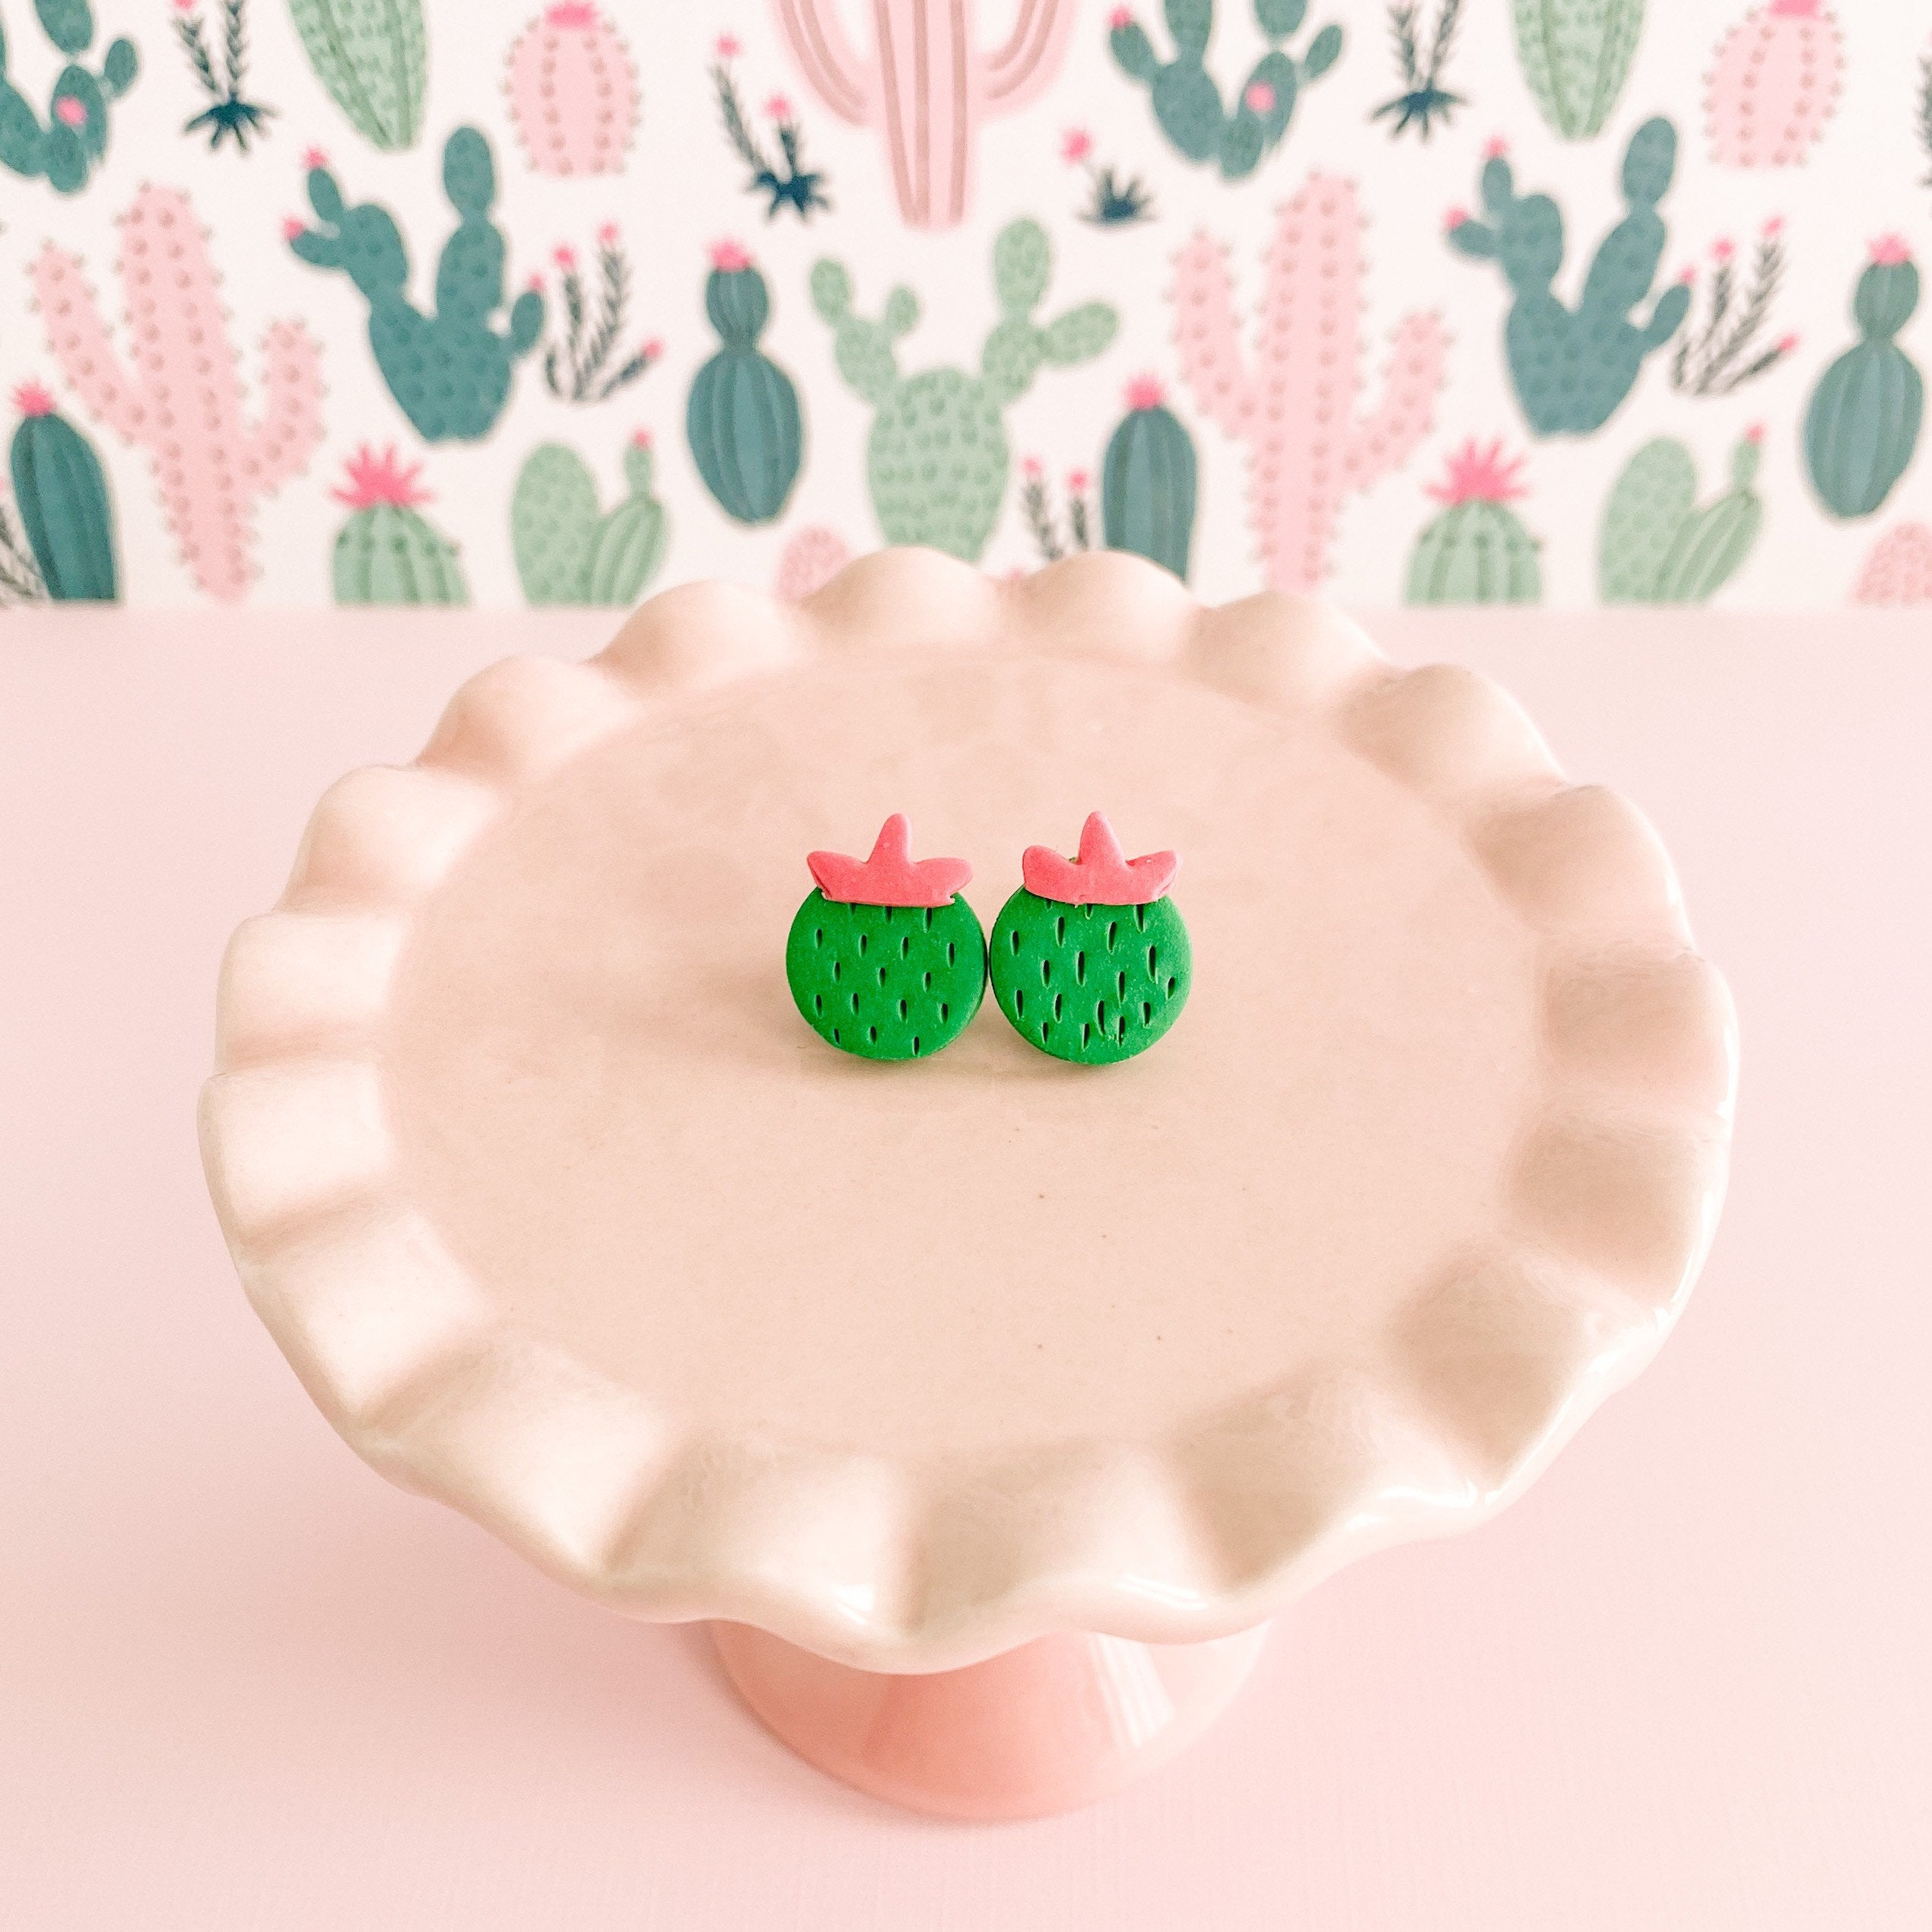 fireflyFrippery Cute Cactus Stud Earrings on Pink Display Stand